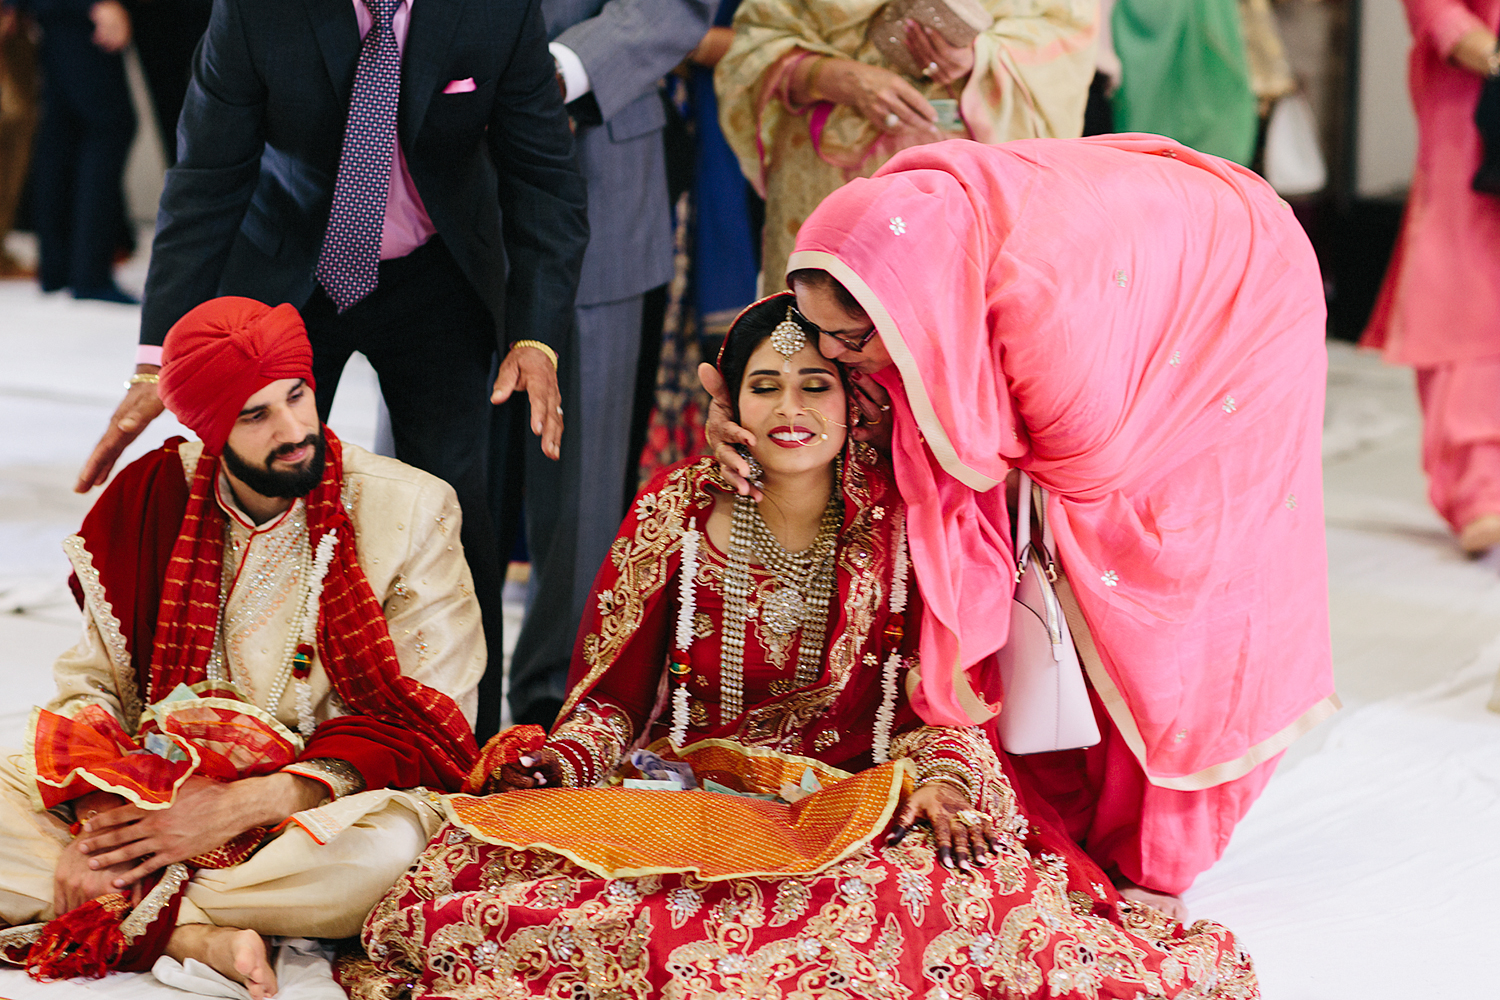 Toronto's-Best-Film-Wedding-Photographers-Multicultural-wedding-specialty-ontario-port-perry-ceremony-at-temple-candid-documentary-film-analog-photography-sikh-ceremony-congratulations.jpg